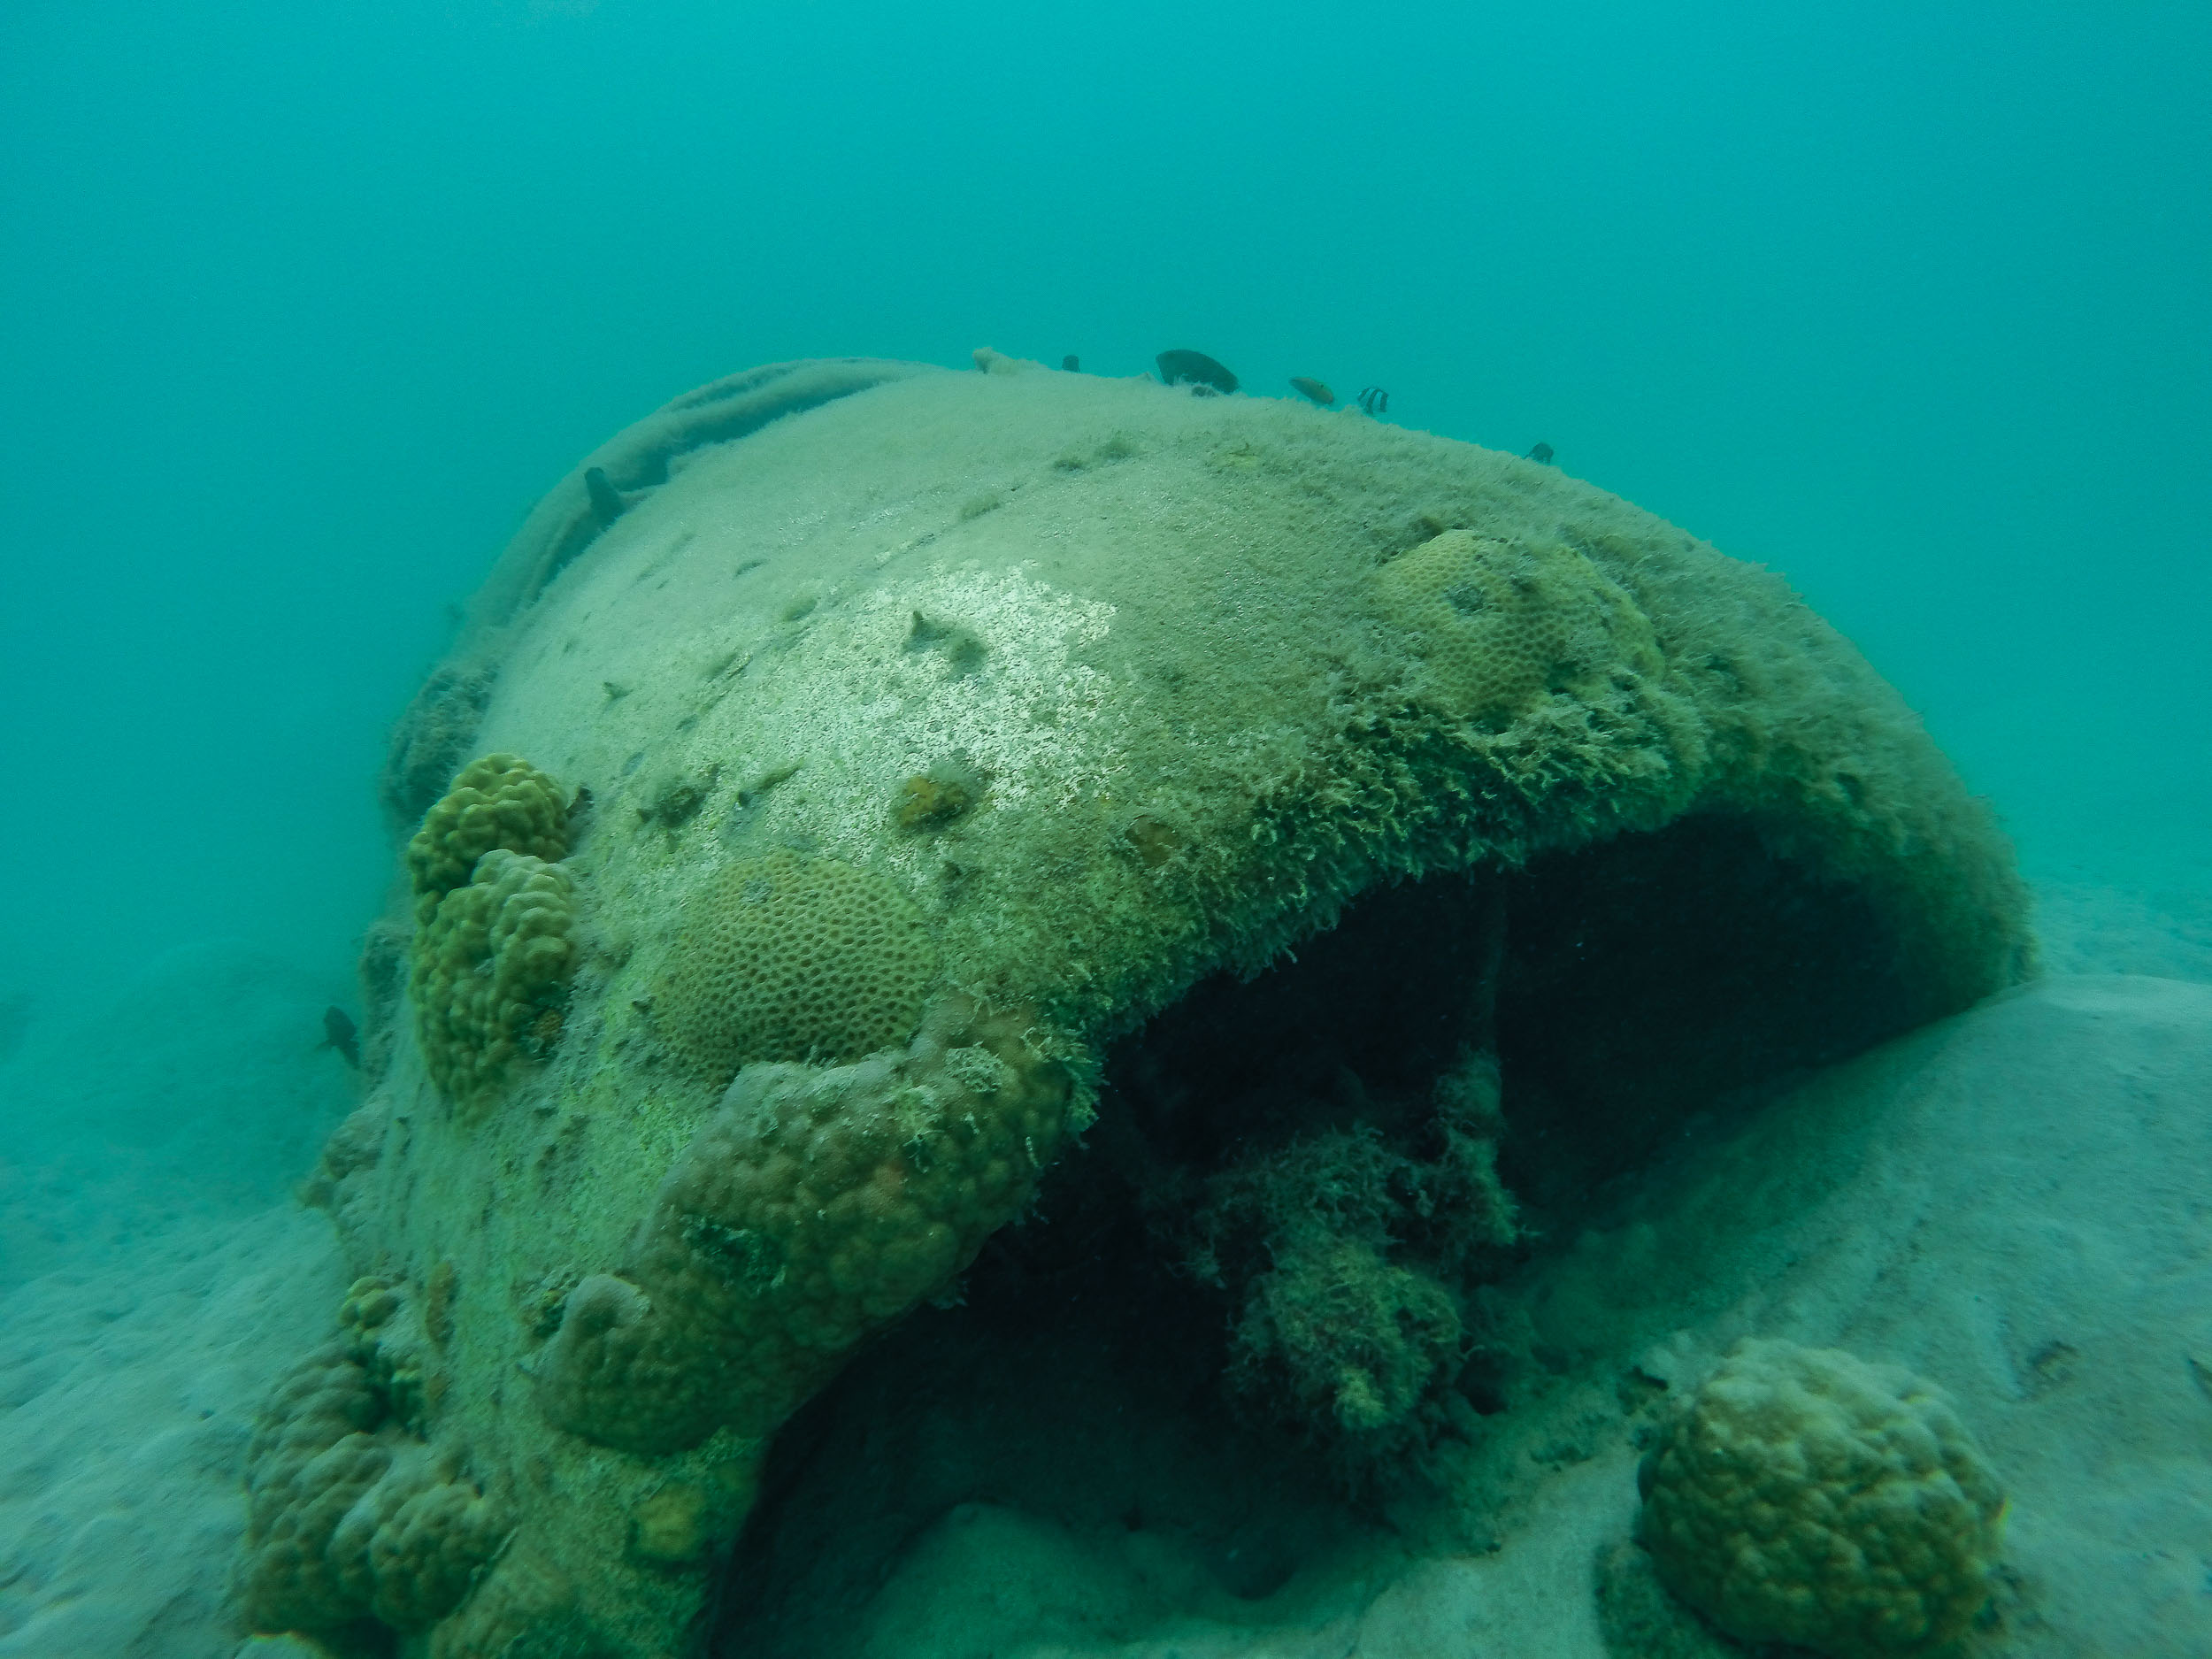 Snorkel on a World Ware 2 Plane Wreck (Nose)